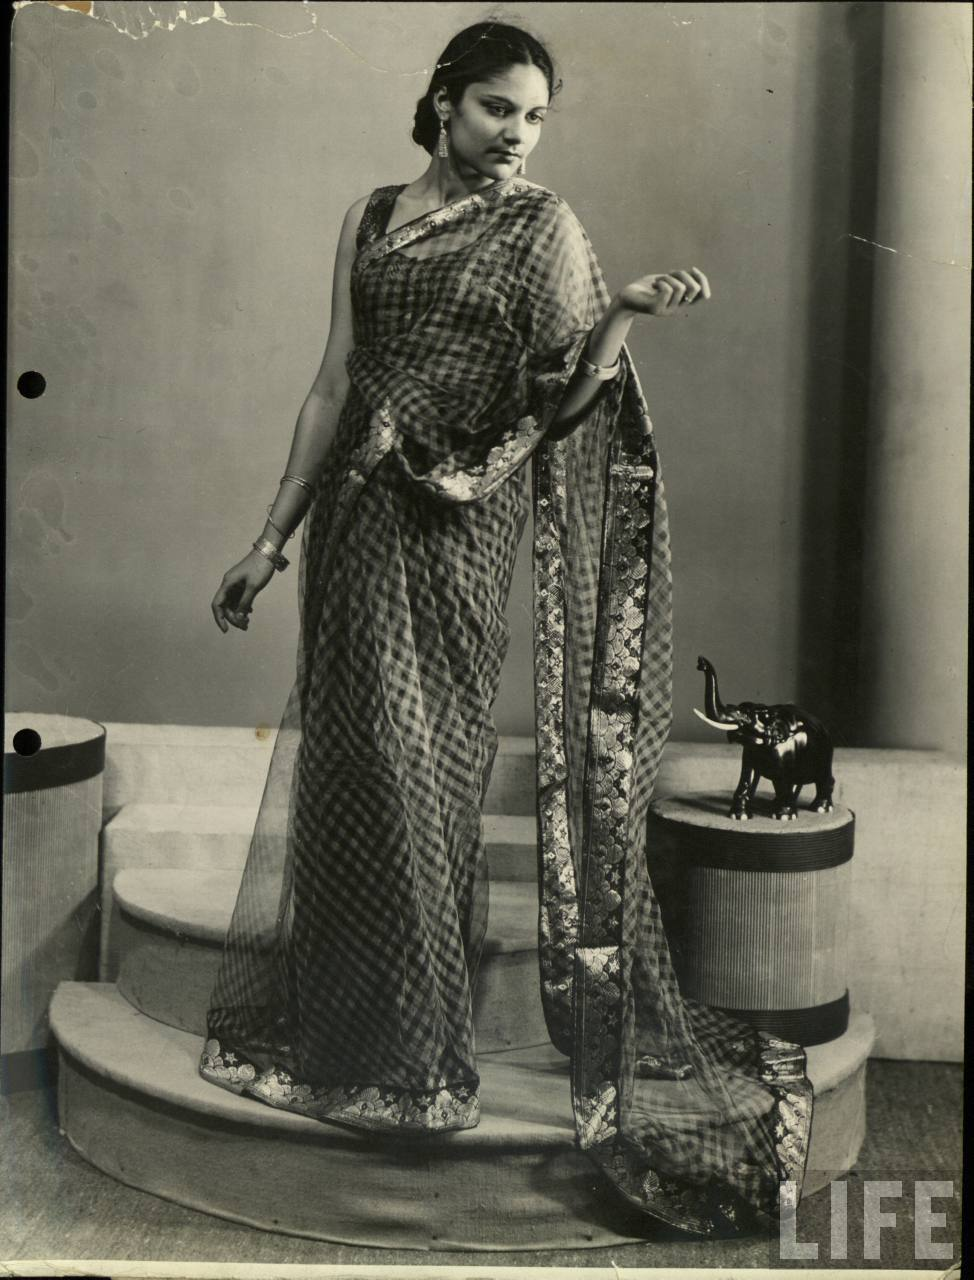 Studio Photograph of an Indian Model